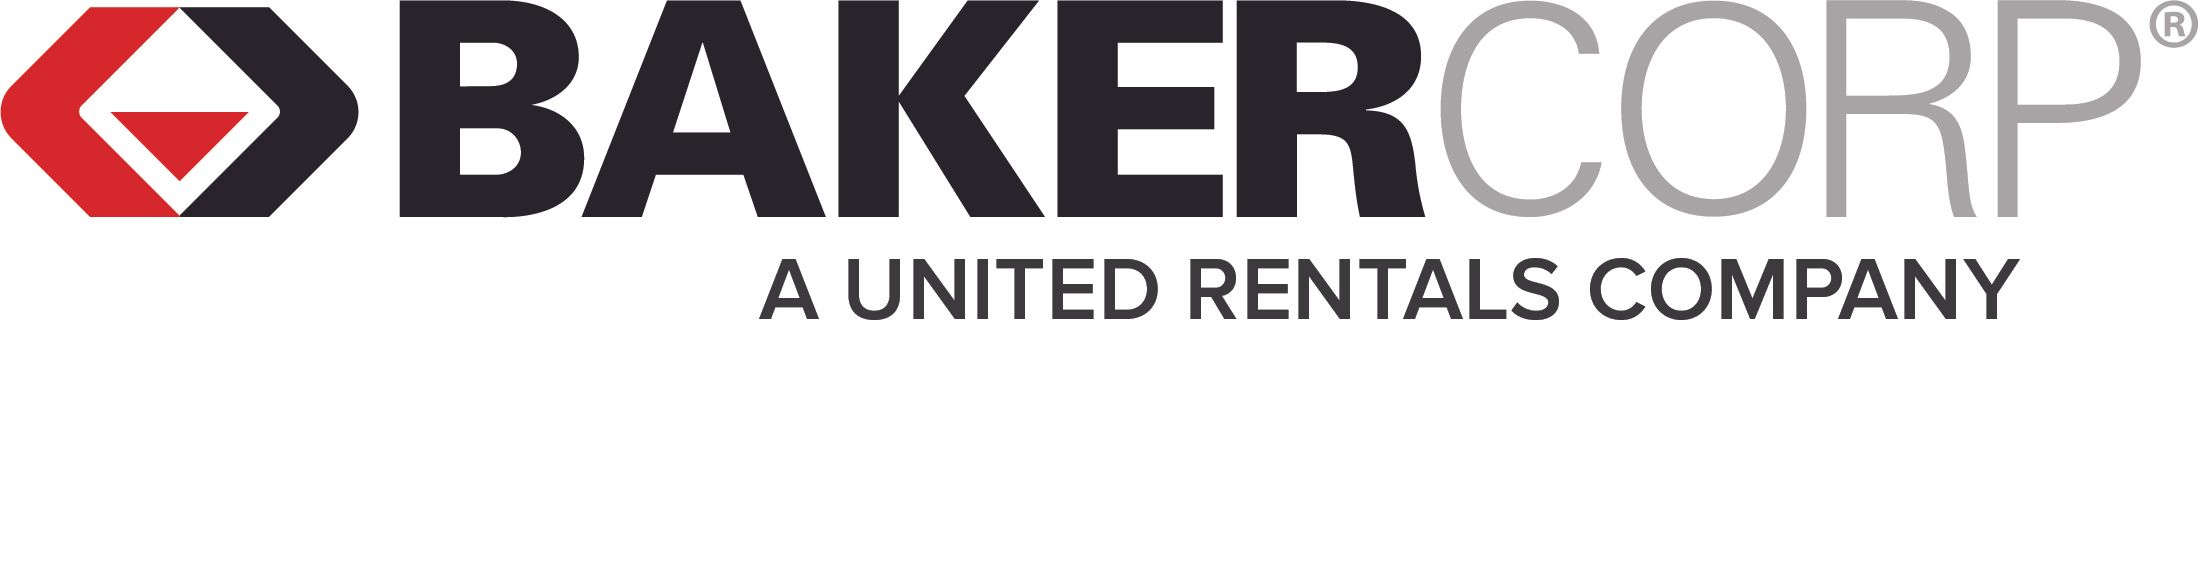 BakerCorp, a United Rentals Company